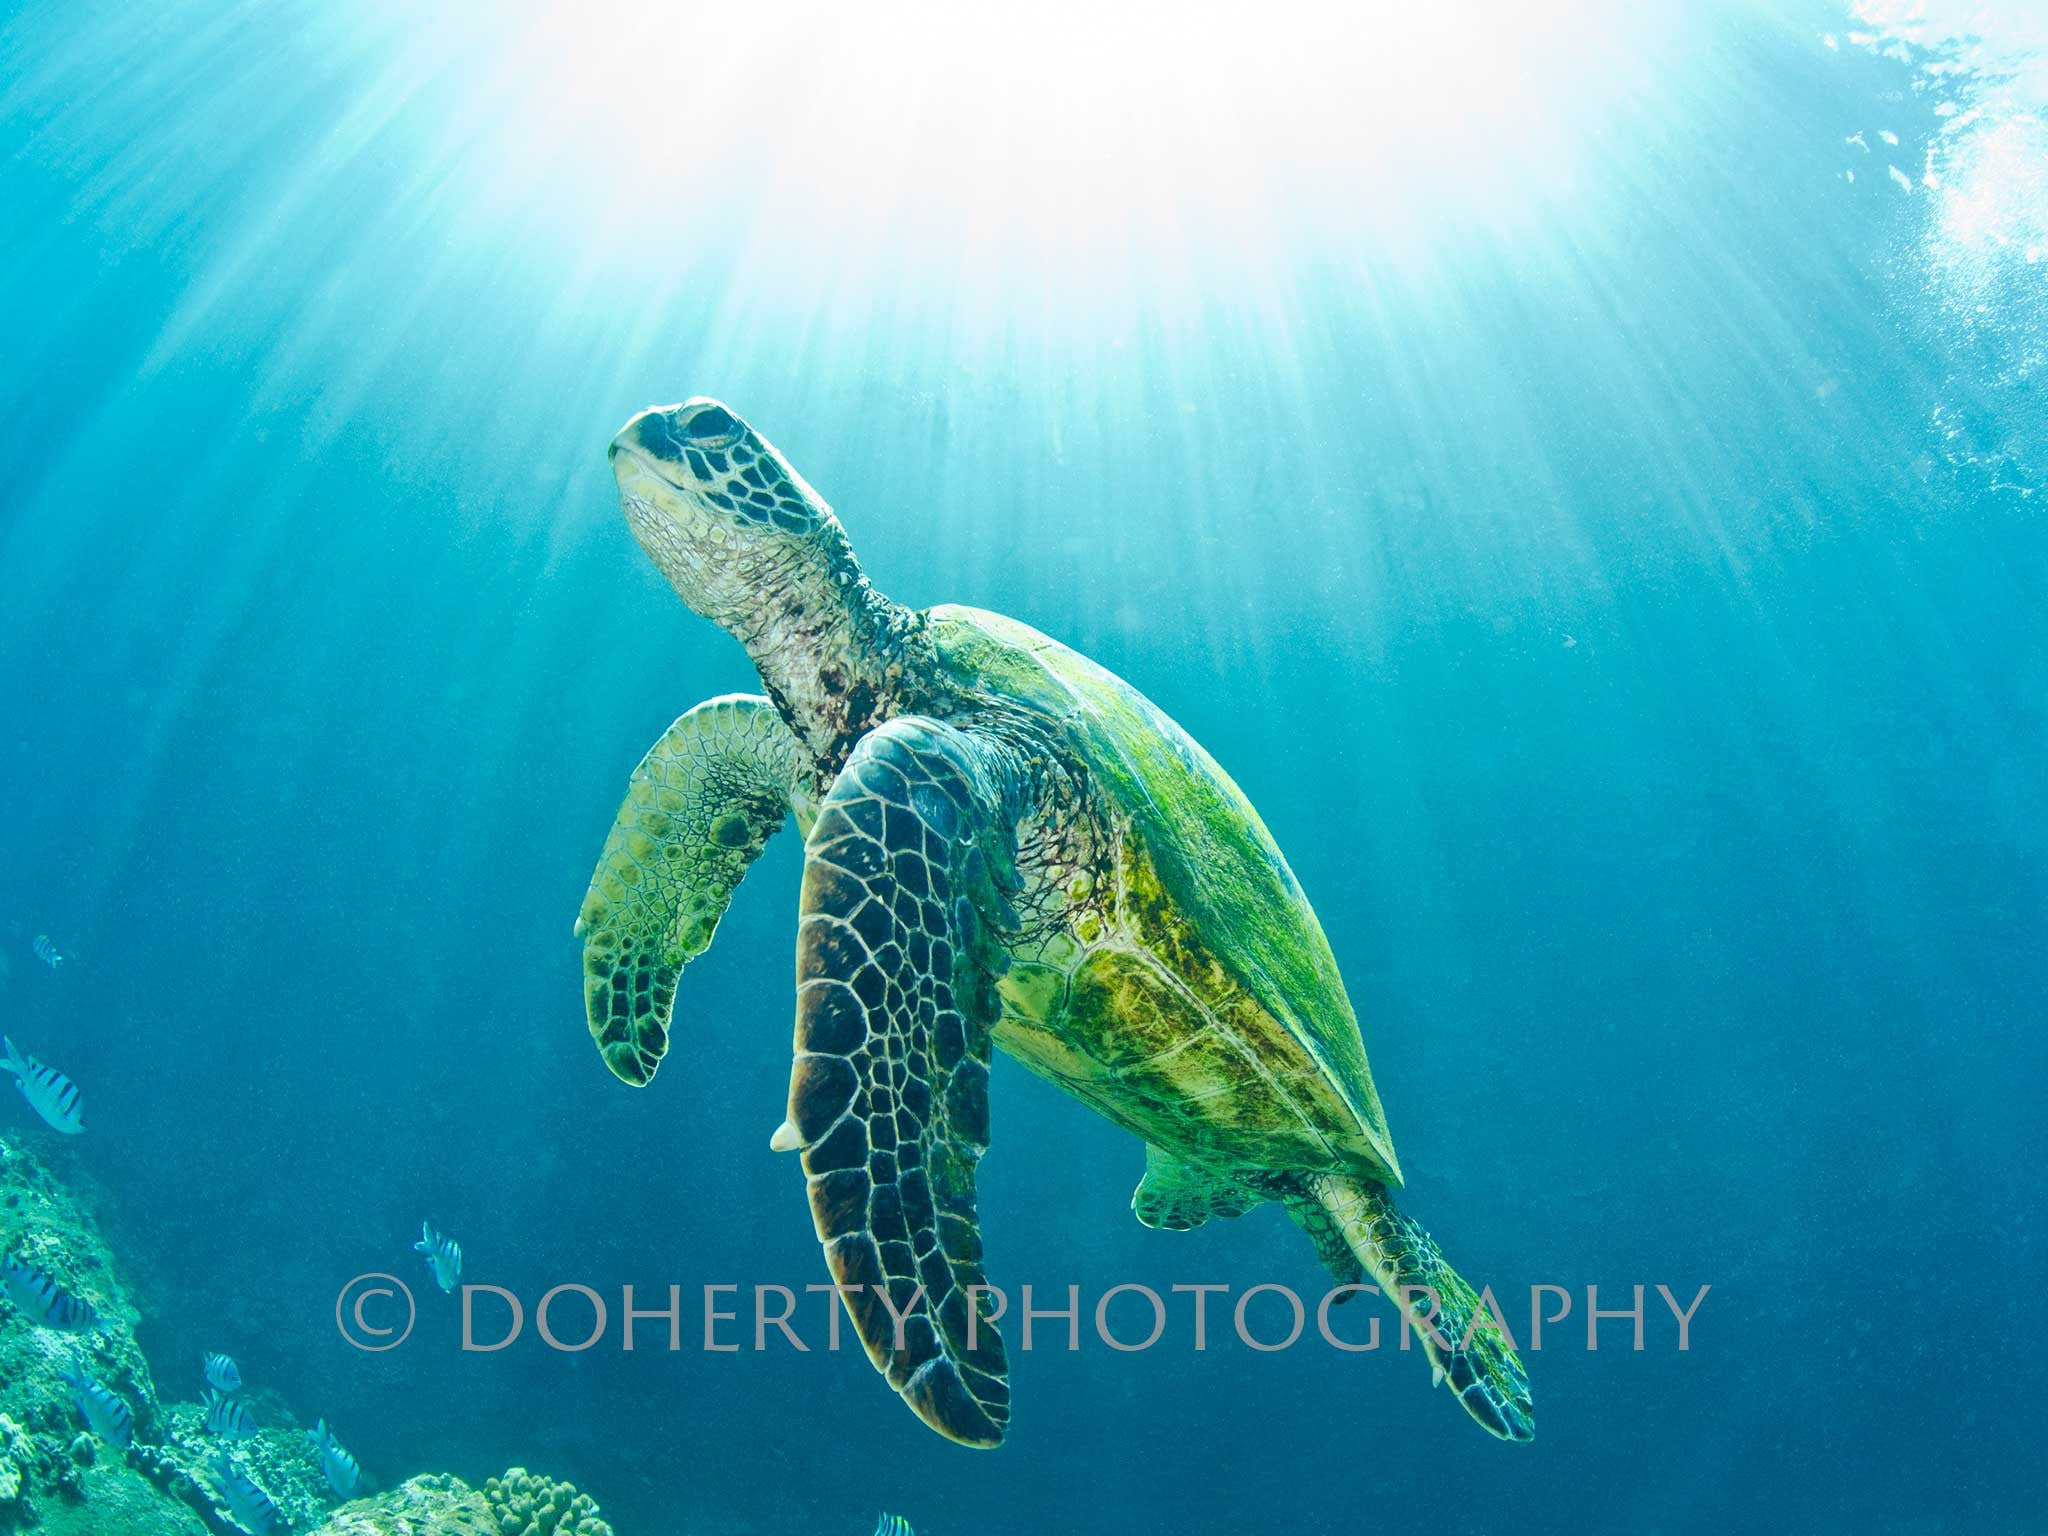 Hawaiian Green Sea Turtle - Doherty Photography